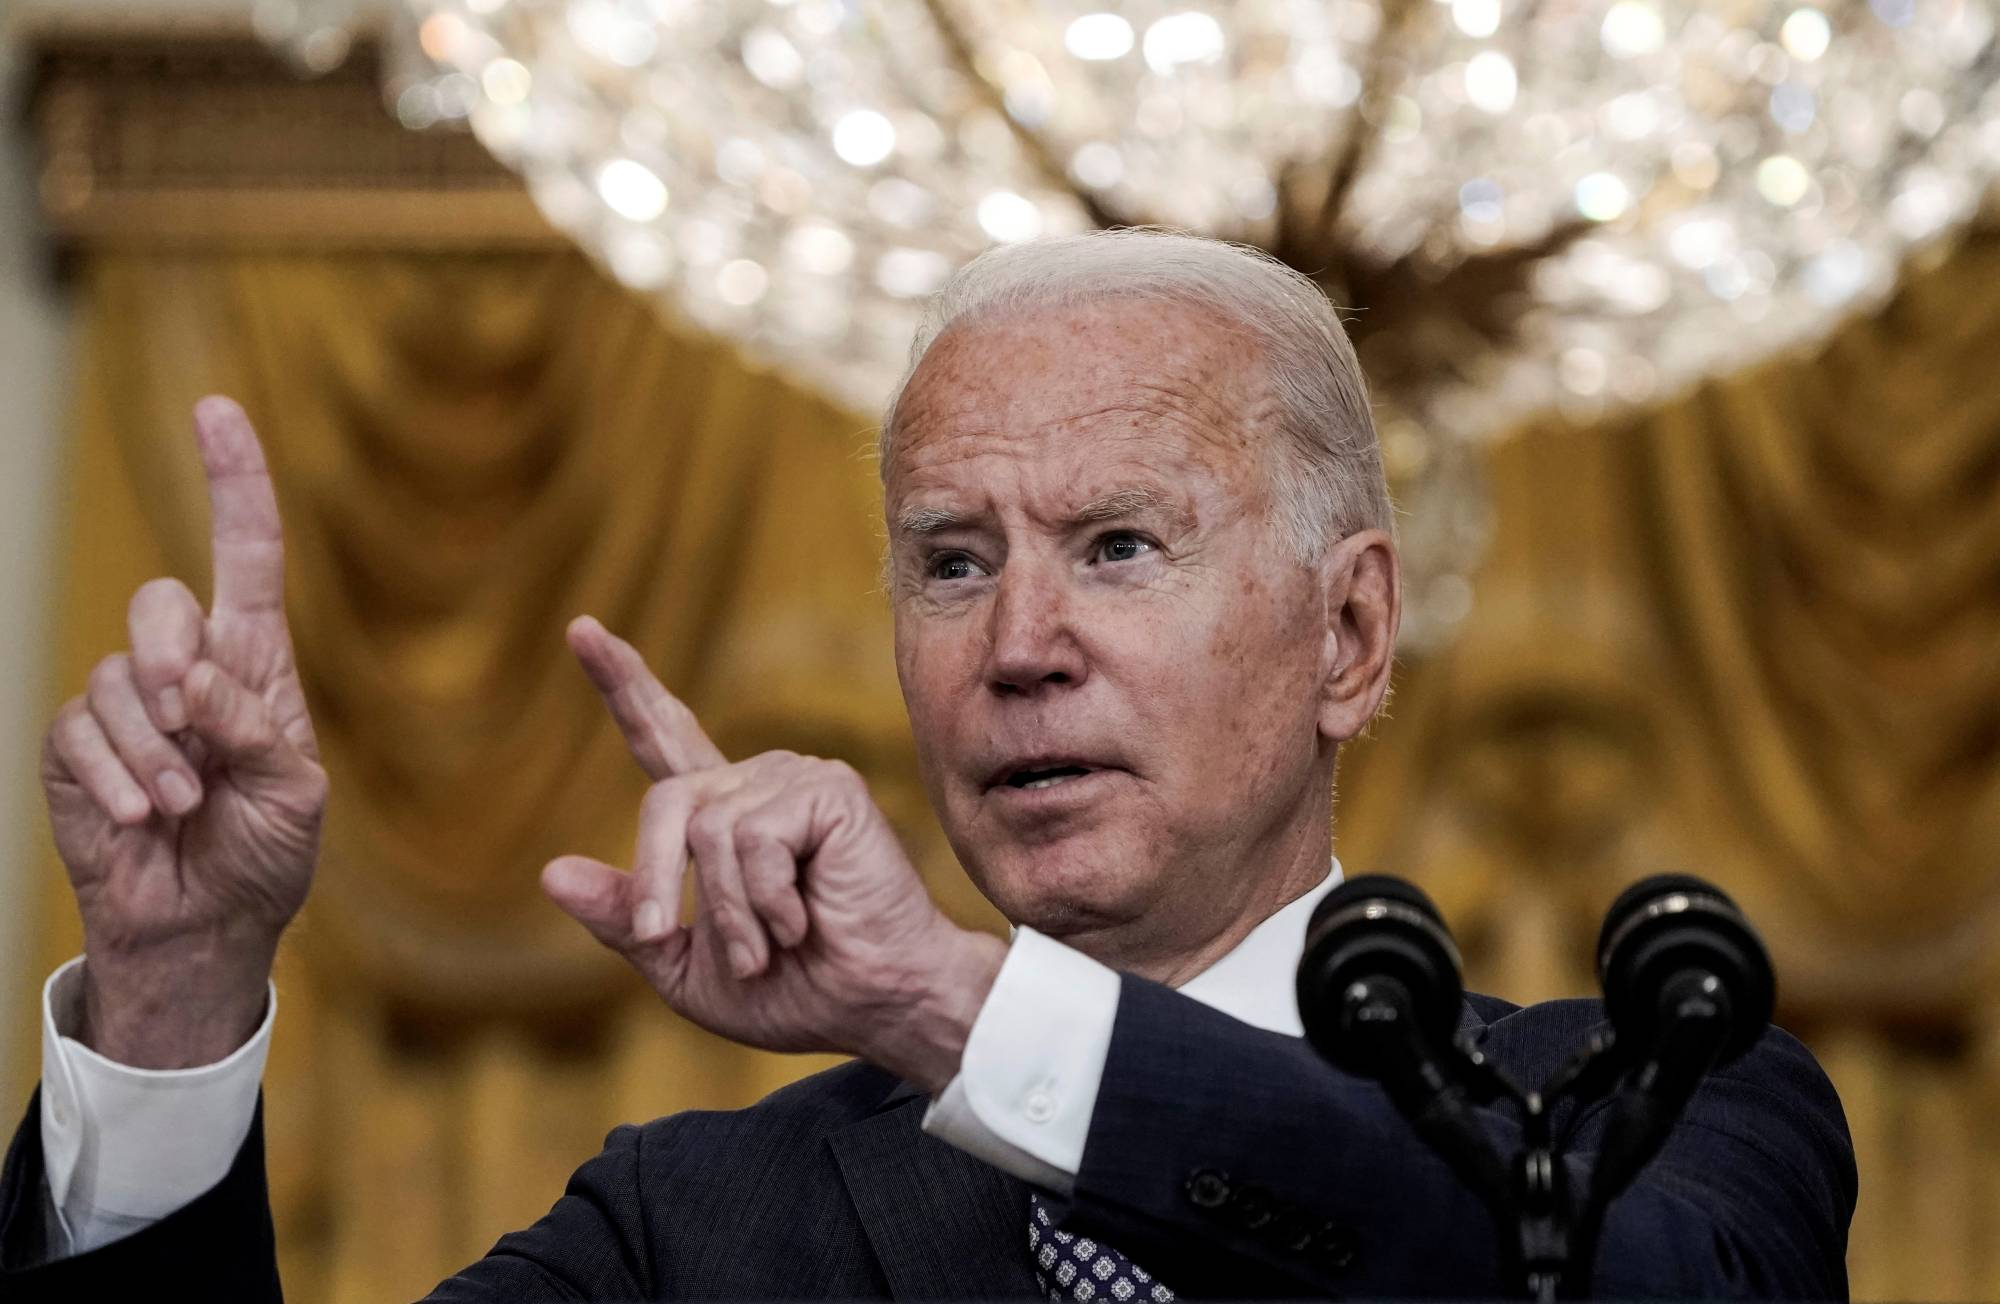 U.S. President Joe Biden delivers remarks on evacuation efforts and the ongoing situation in Afghanistan during a speech at the White House in Washington on Friday.   REUTERS